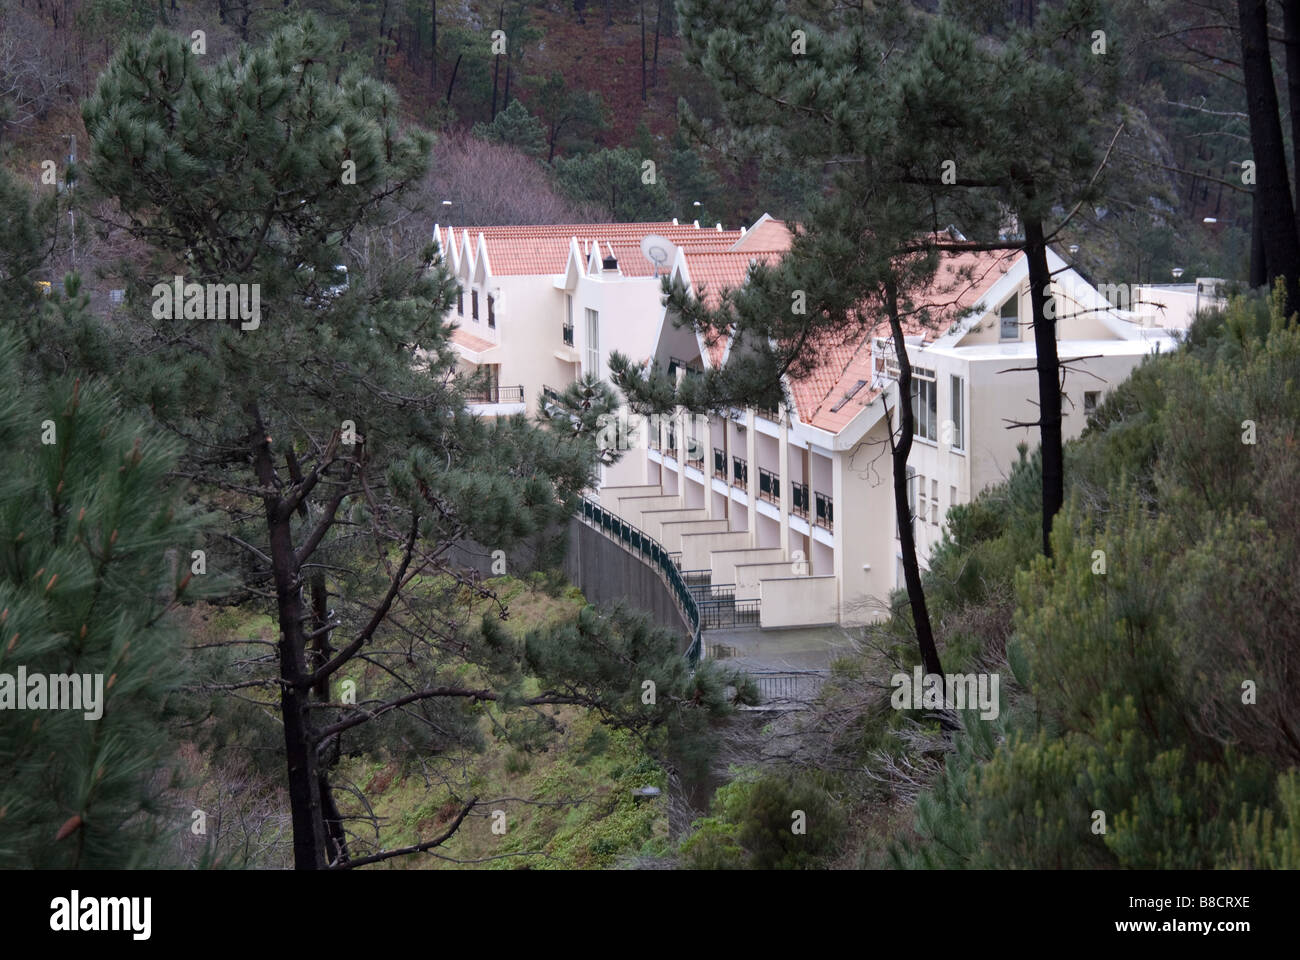 Estalagem Eira do Serrado, Funchal, Madeira, Portugal,from the path up to the viewpoint above Curral das Freiras - Stock Image